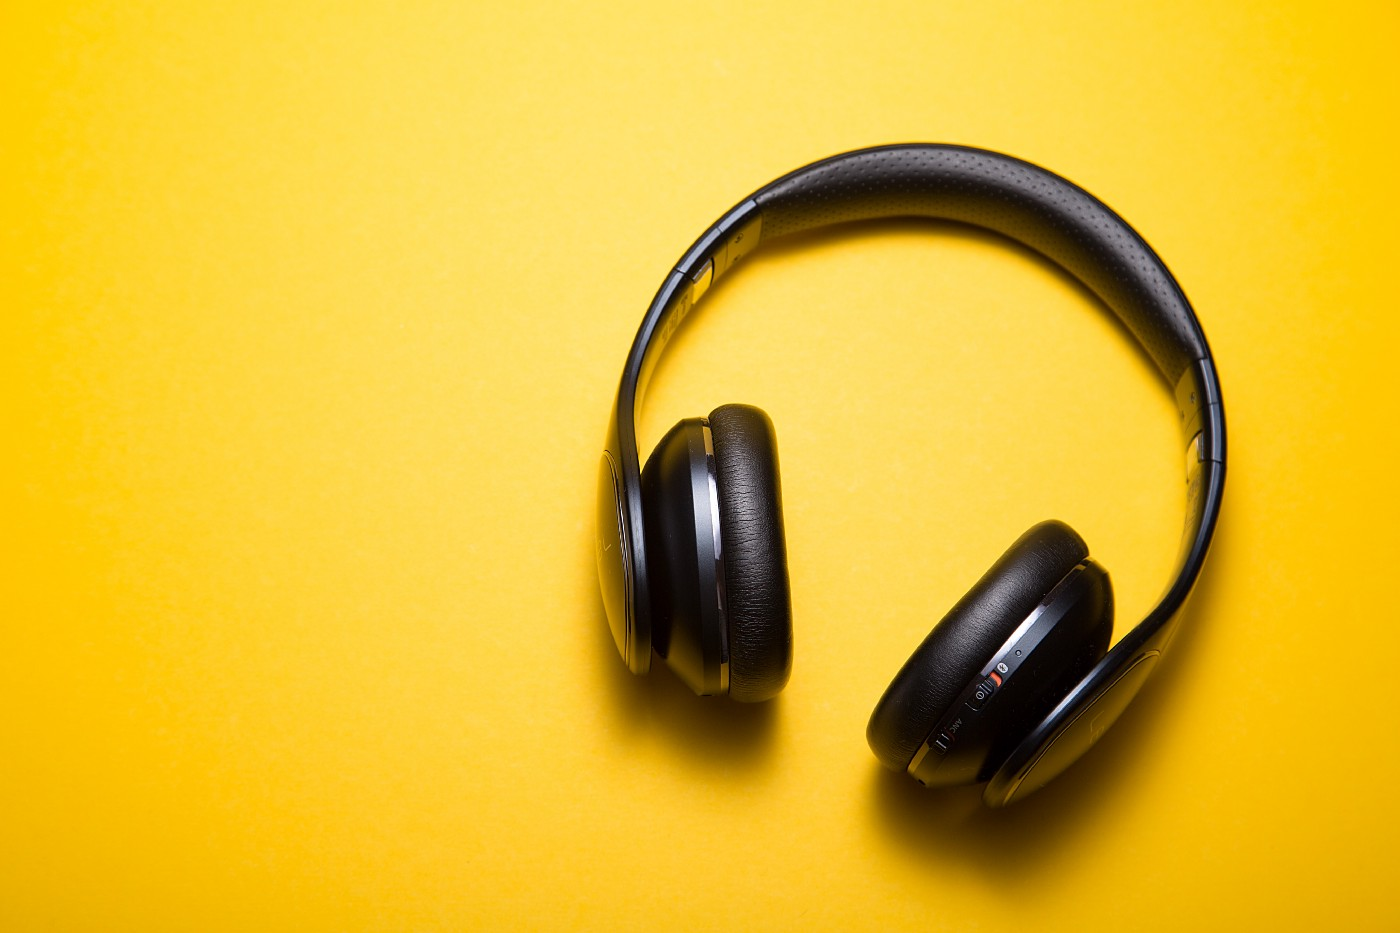 A pair of black headphones against a yellow background